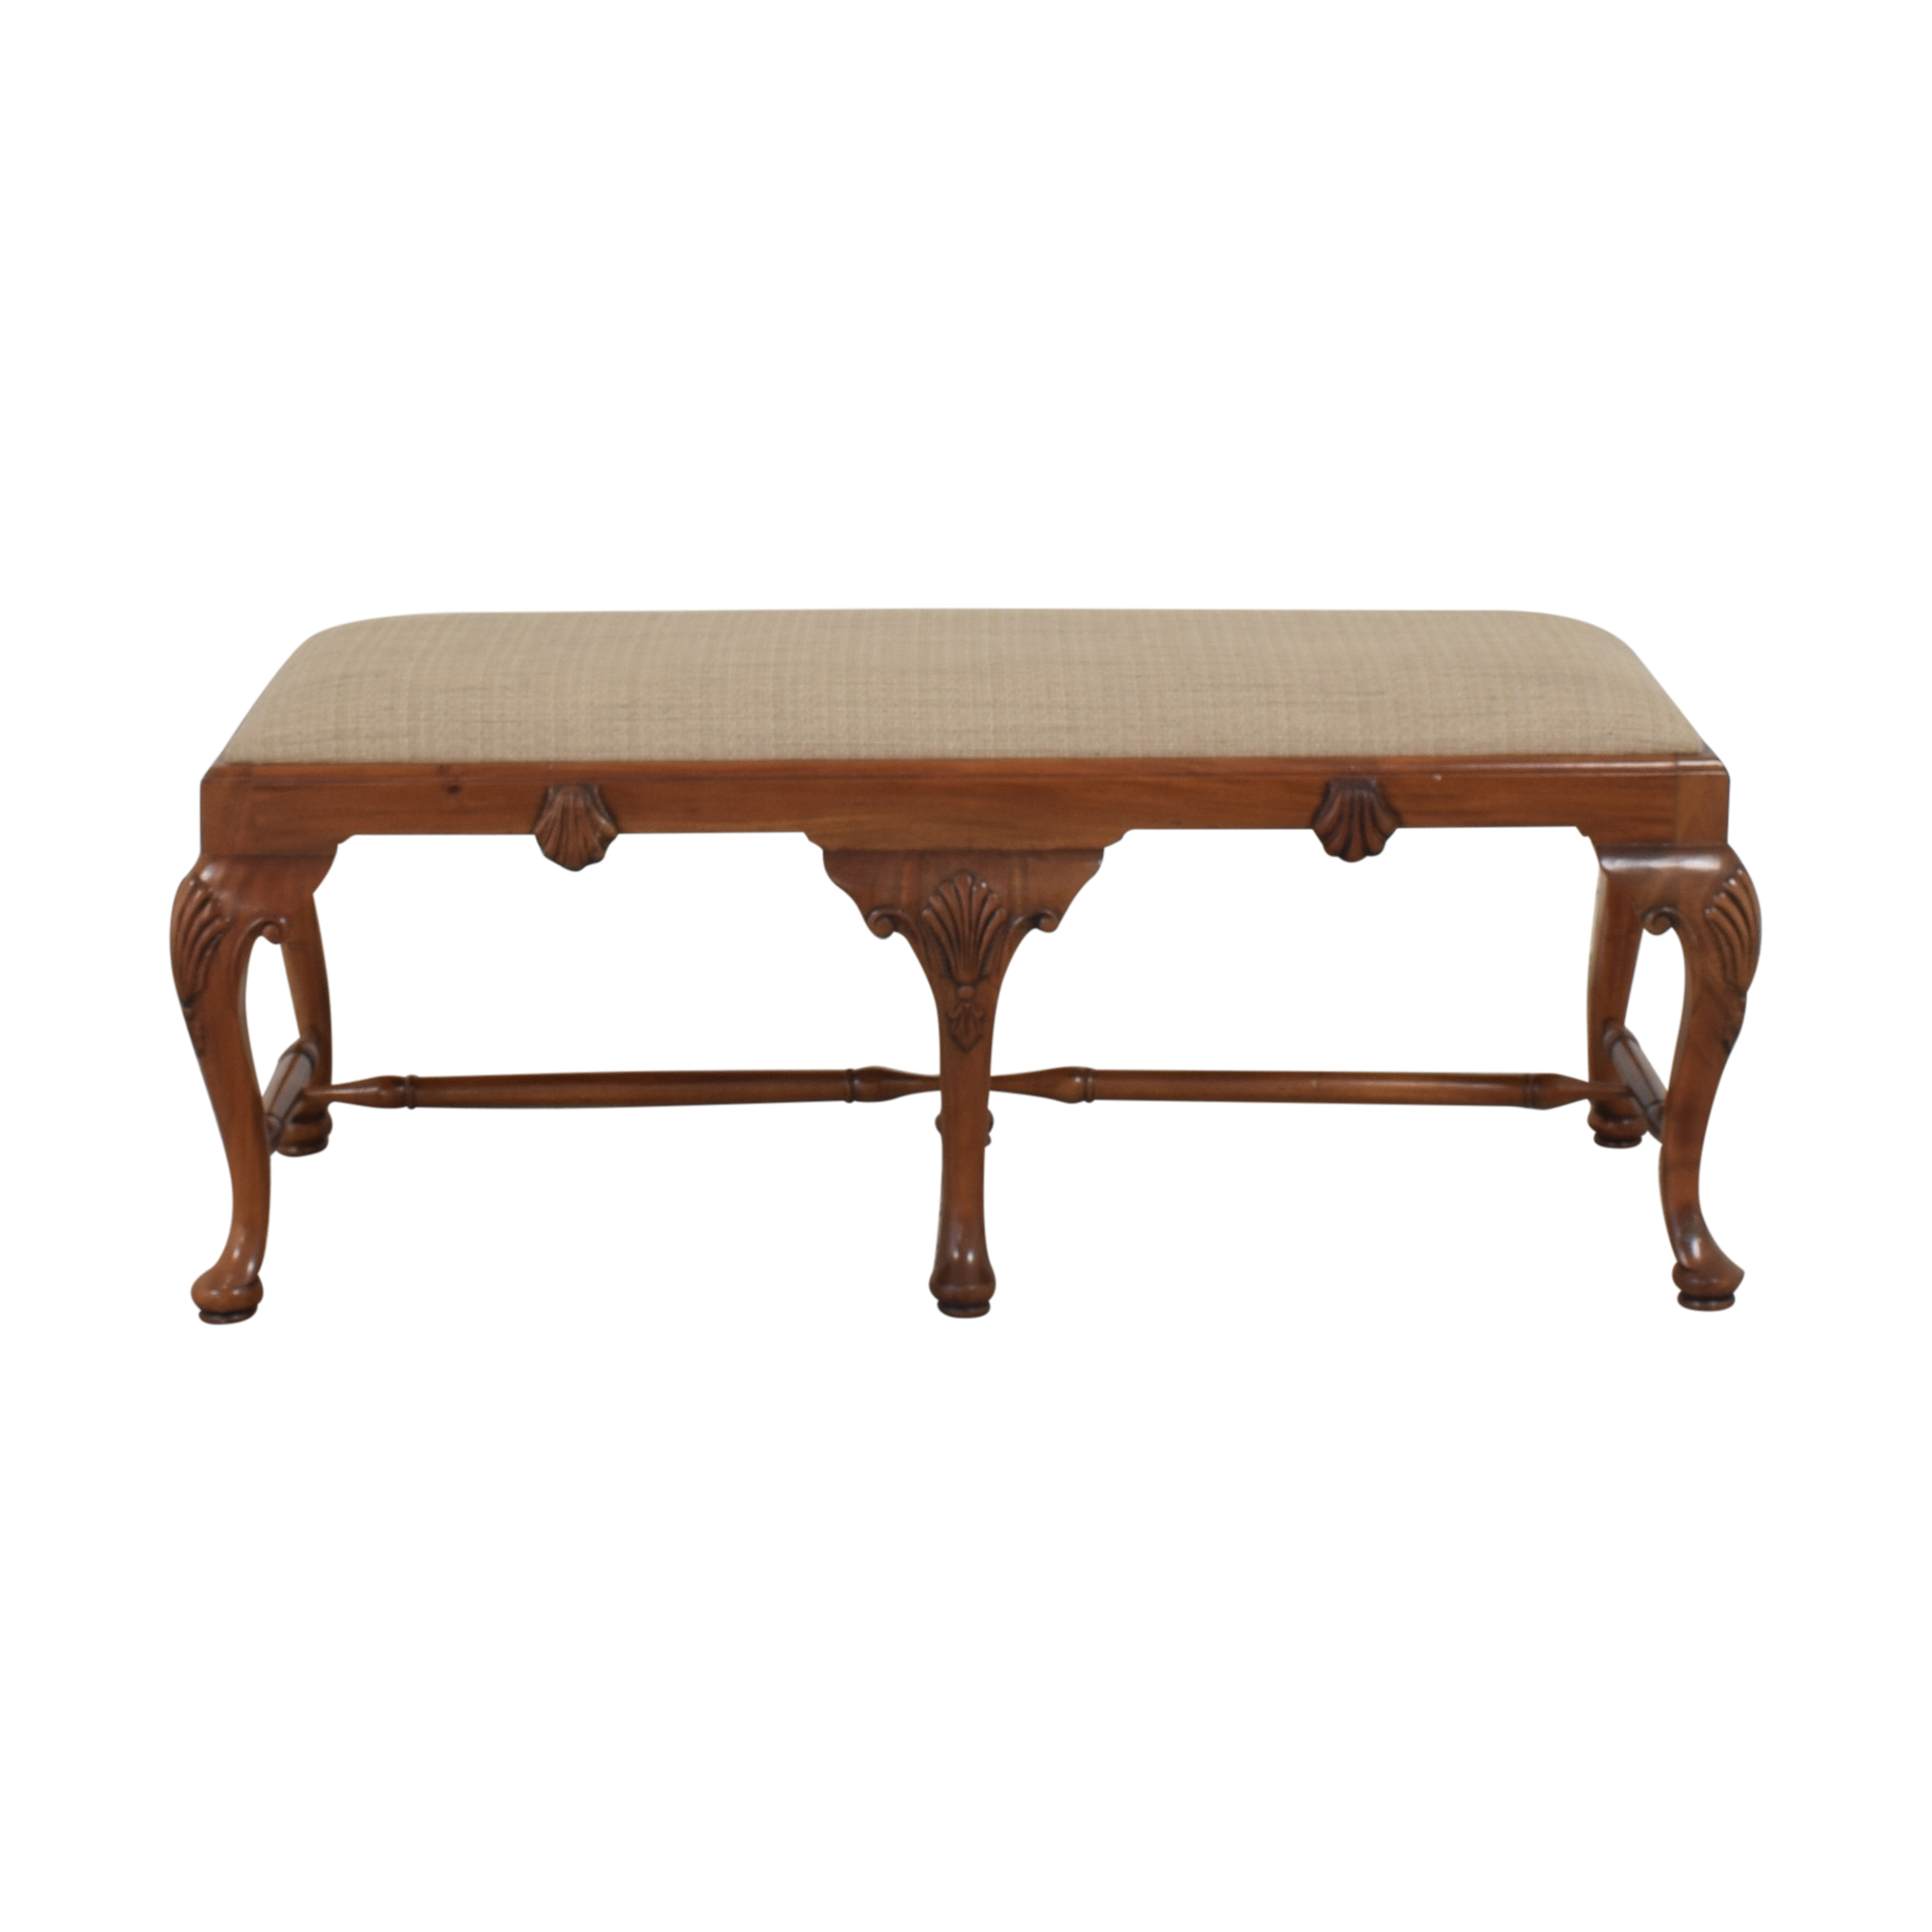 Upholstered Bench dimensions